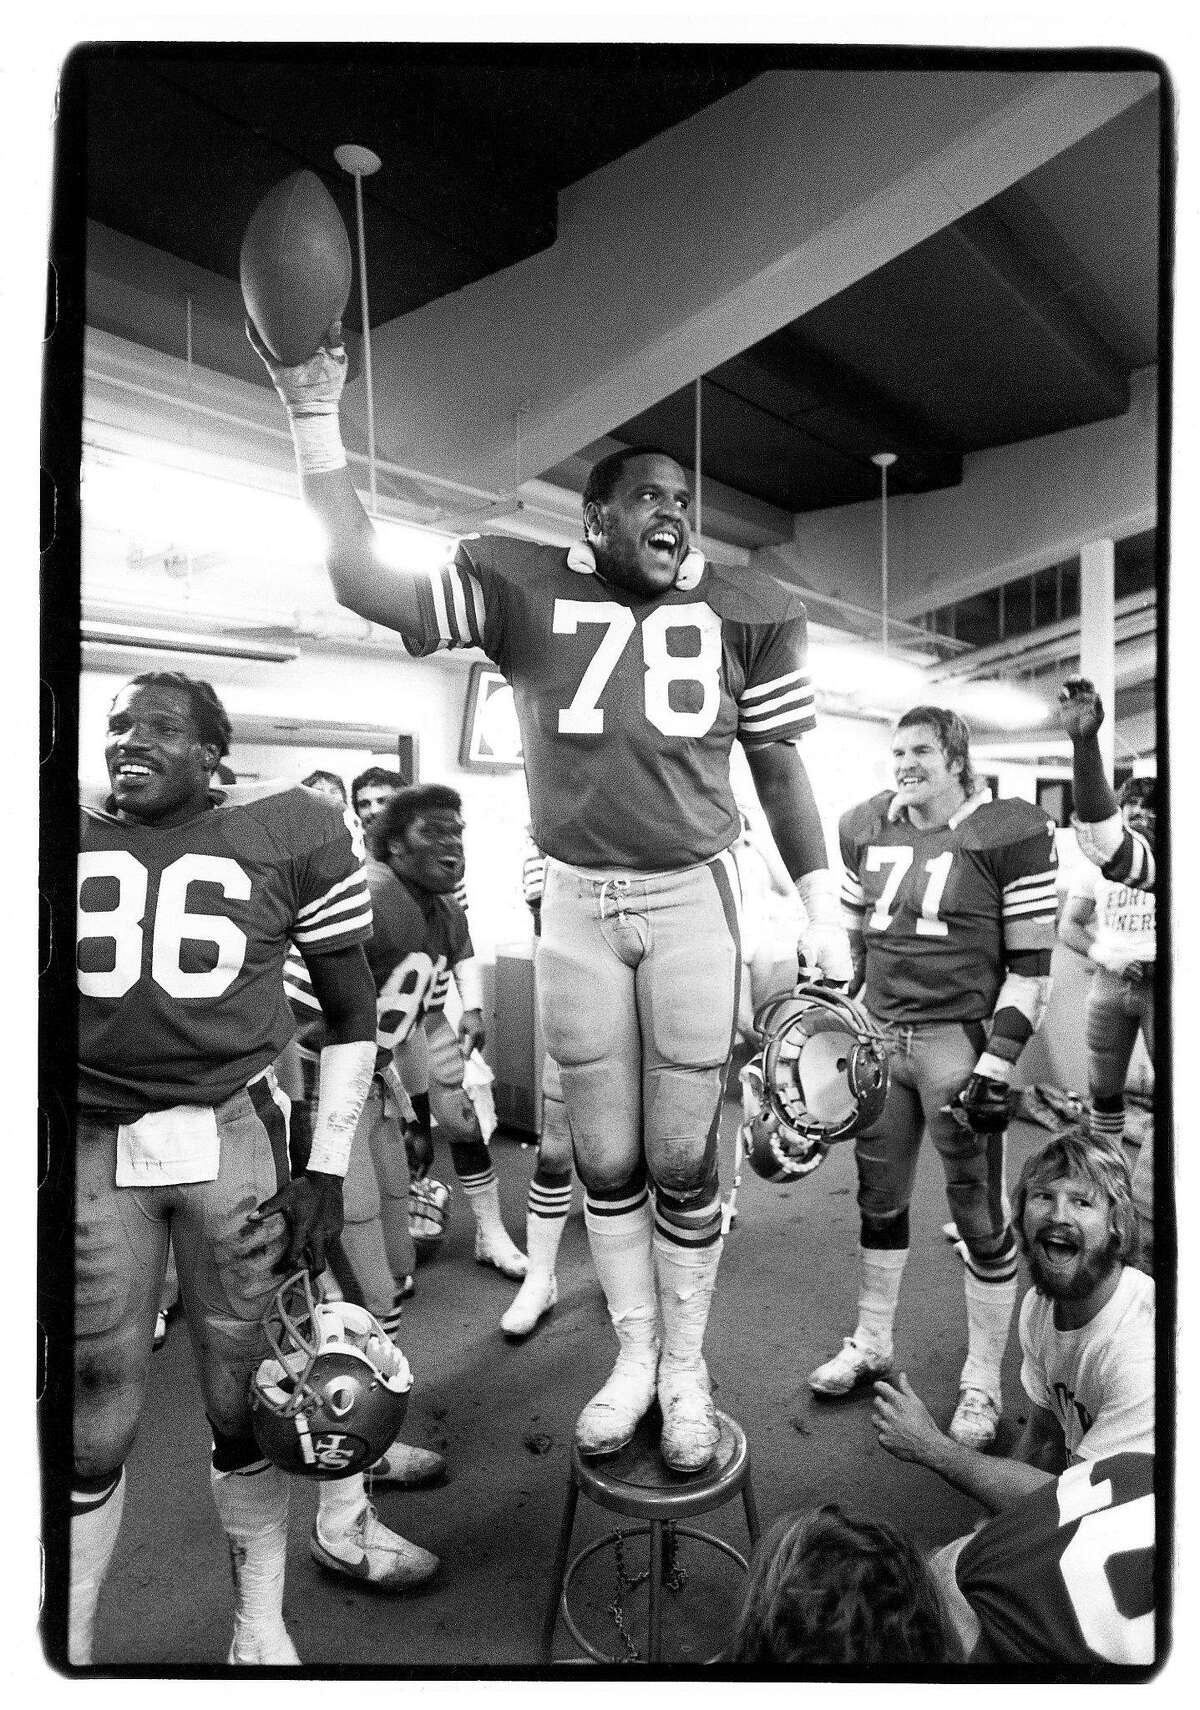 Defensive tackle Archie Reese #78 of the San Francisco 49ers holds the game ball in the locker room following the game against the New Orleans Saints at Candlestick Park on December 7, 1980 in San Francisco, California. The Niners came back from a 35-7 deficit to win 38-35 in the greatest regular season comeback in NFL history.